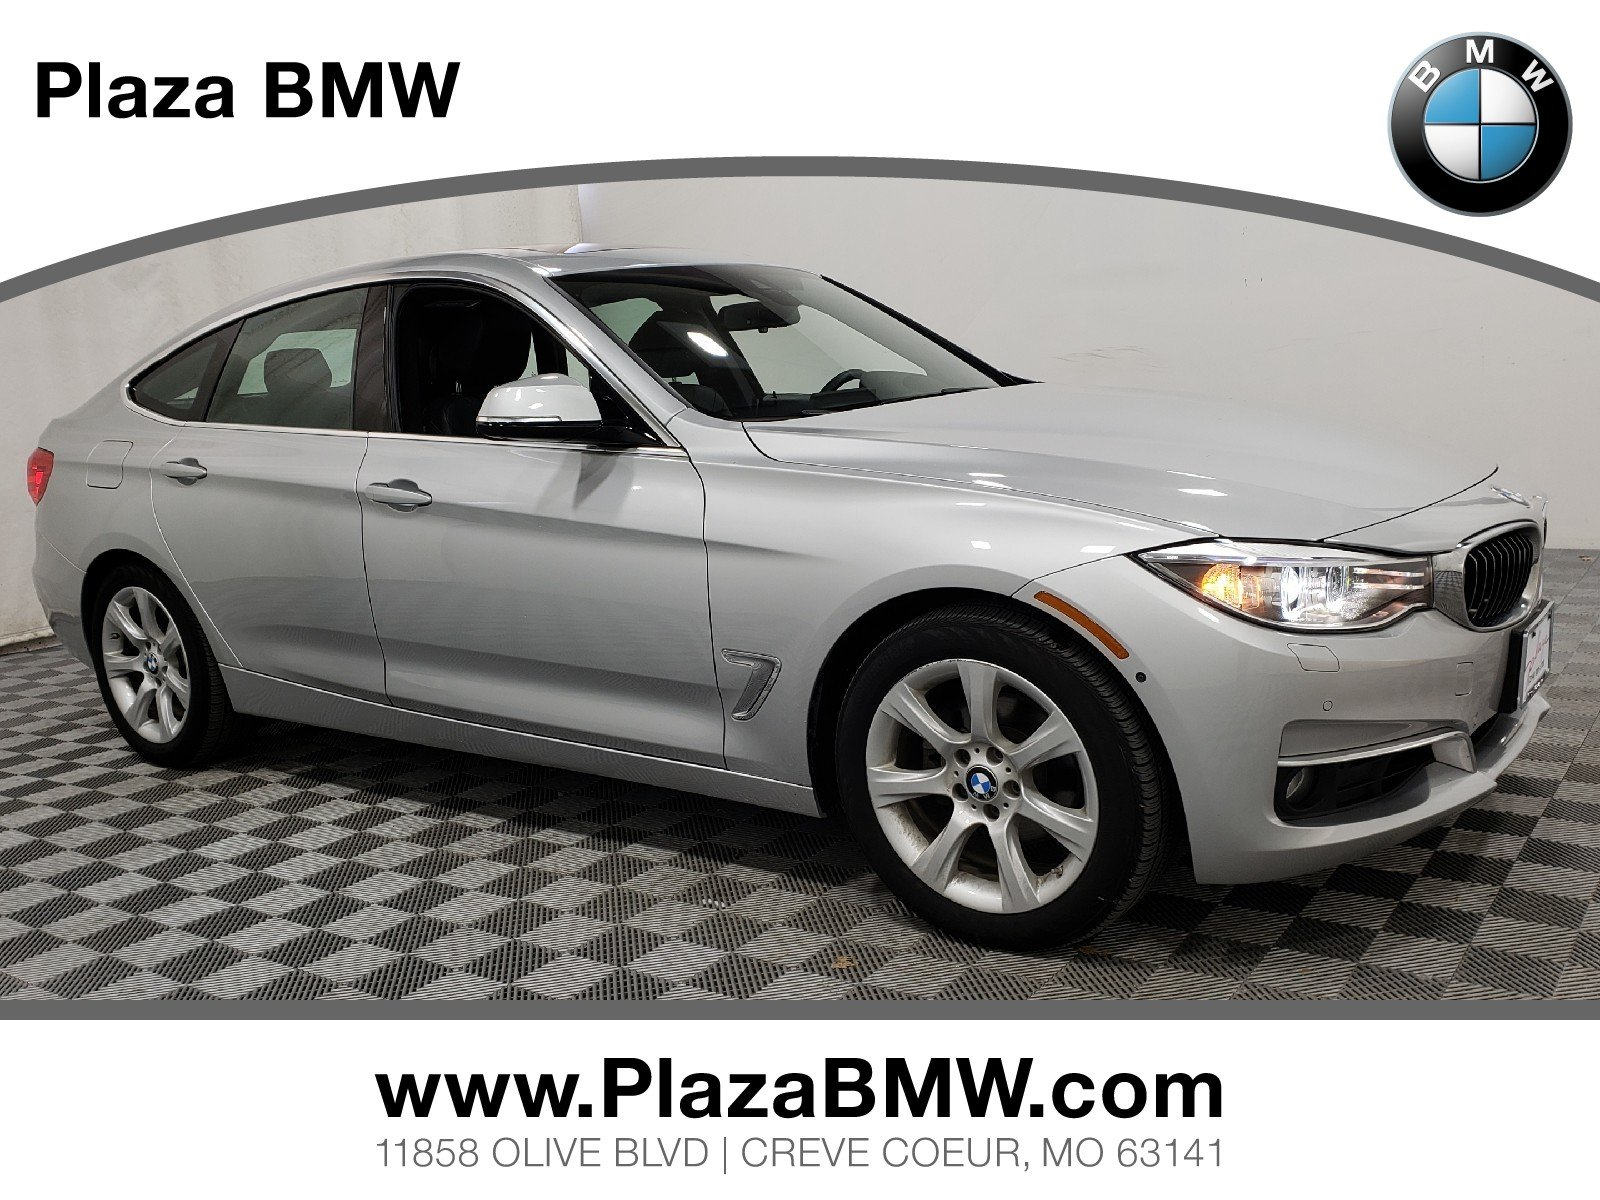 Pre Owned Bmw Discounts St Louis Creve Coeur Springfield Mo